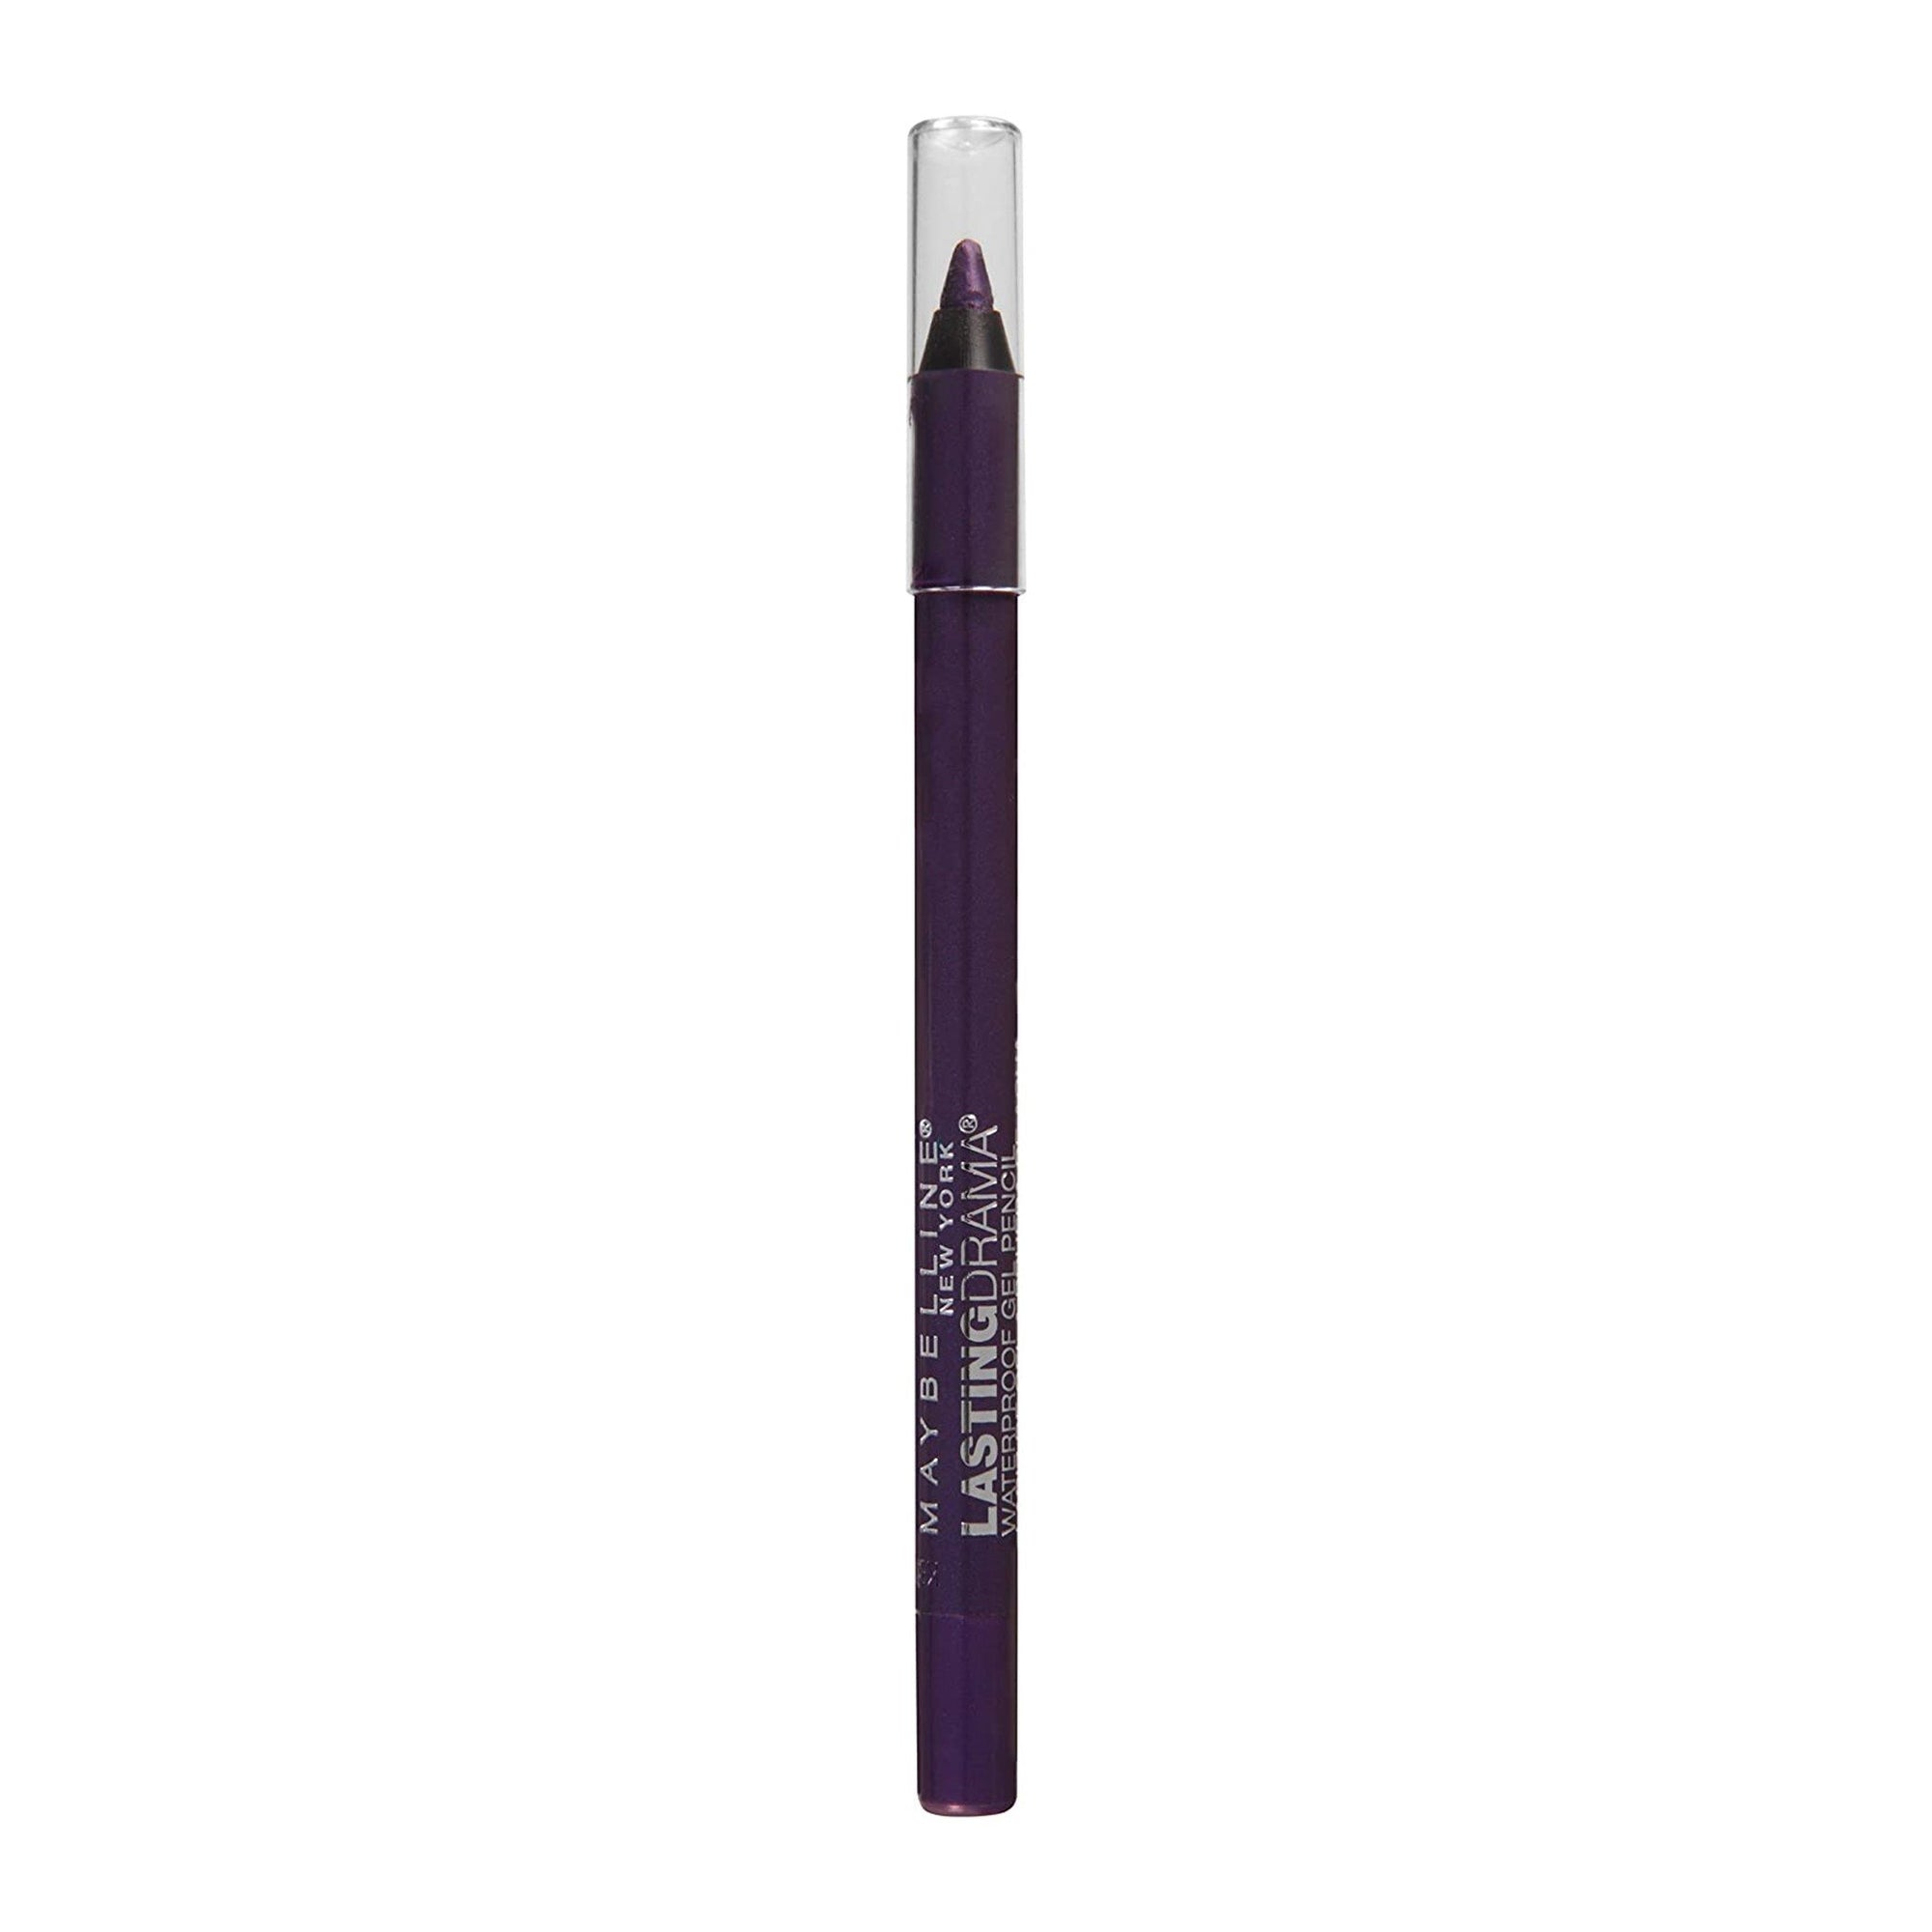 Maybelline Lasting Drama Eye Pencil Polished Amethyst